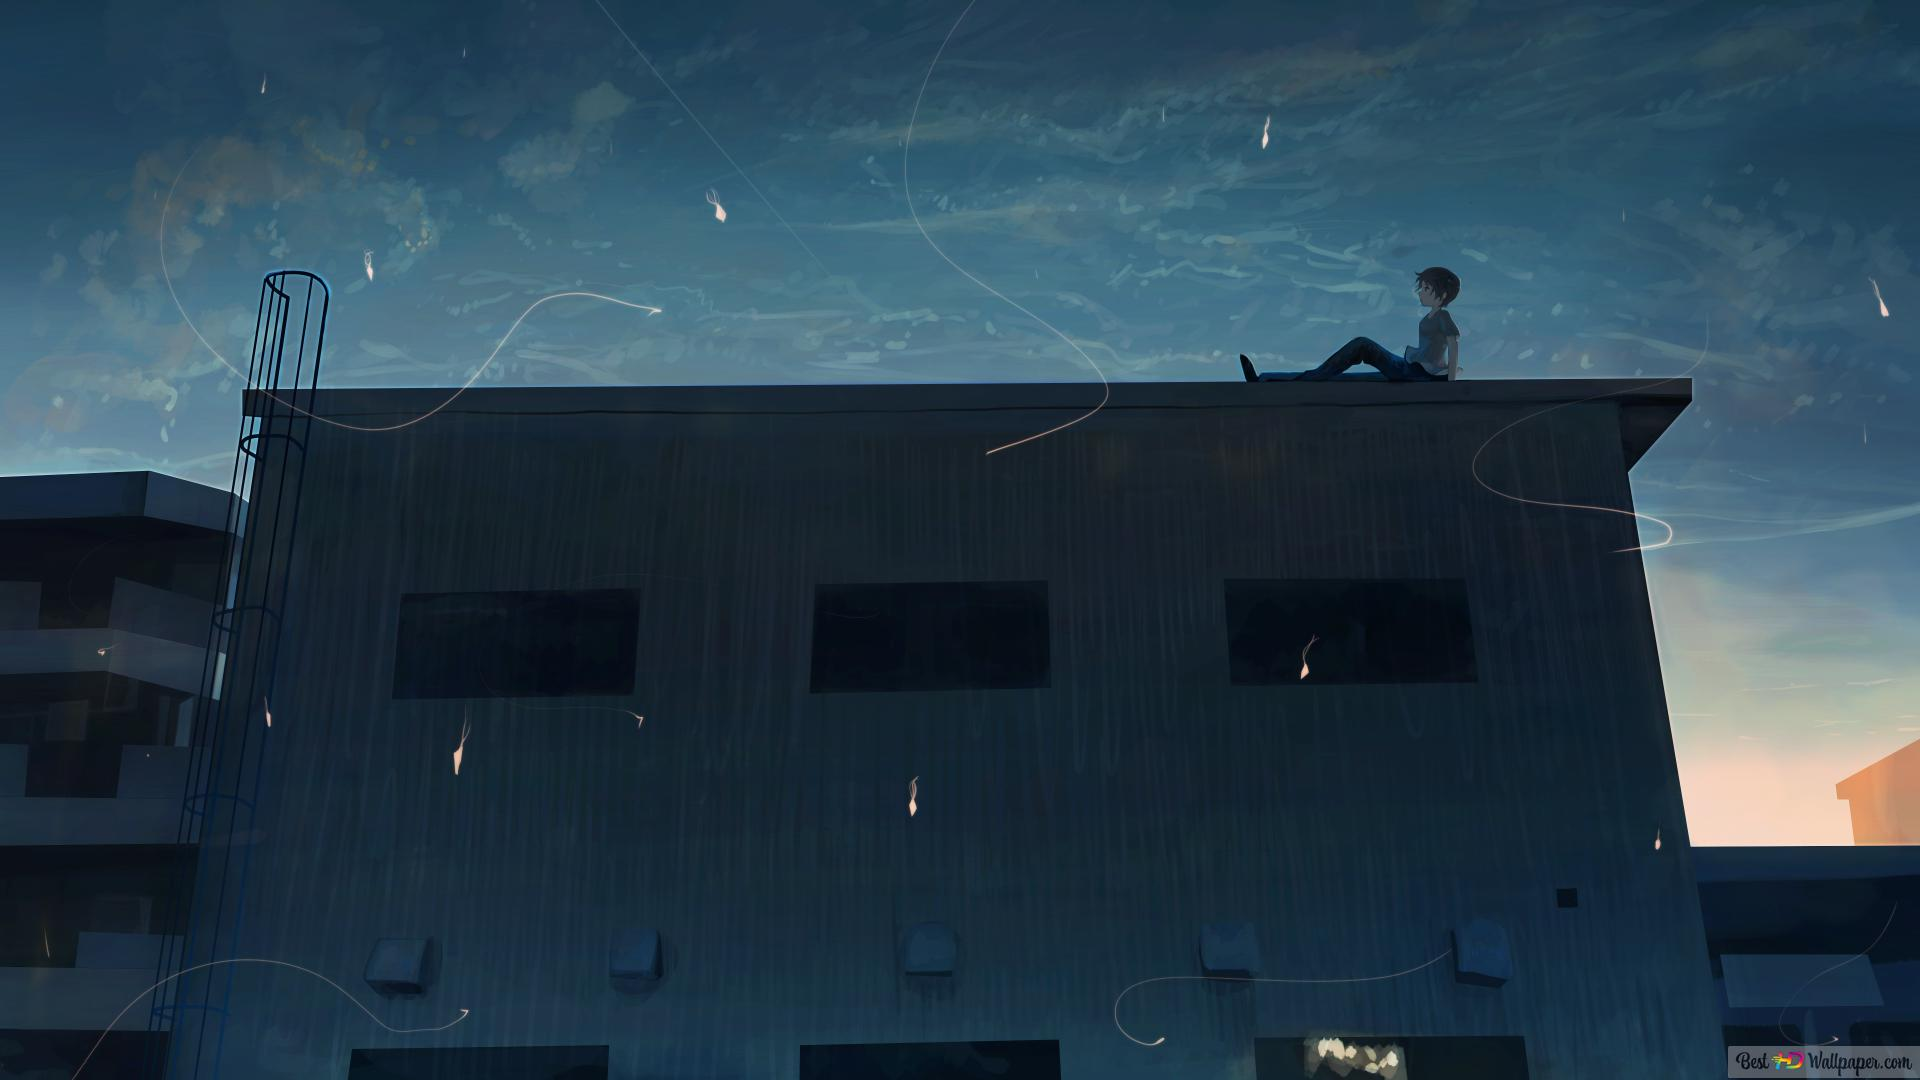 Anime Boy Sitting In The Roof Hd Wallpaper Download